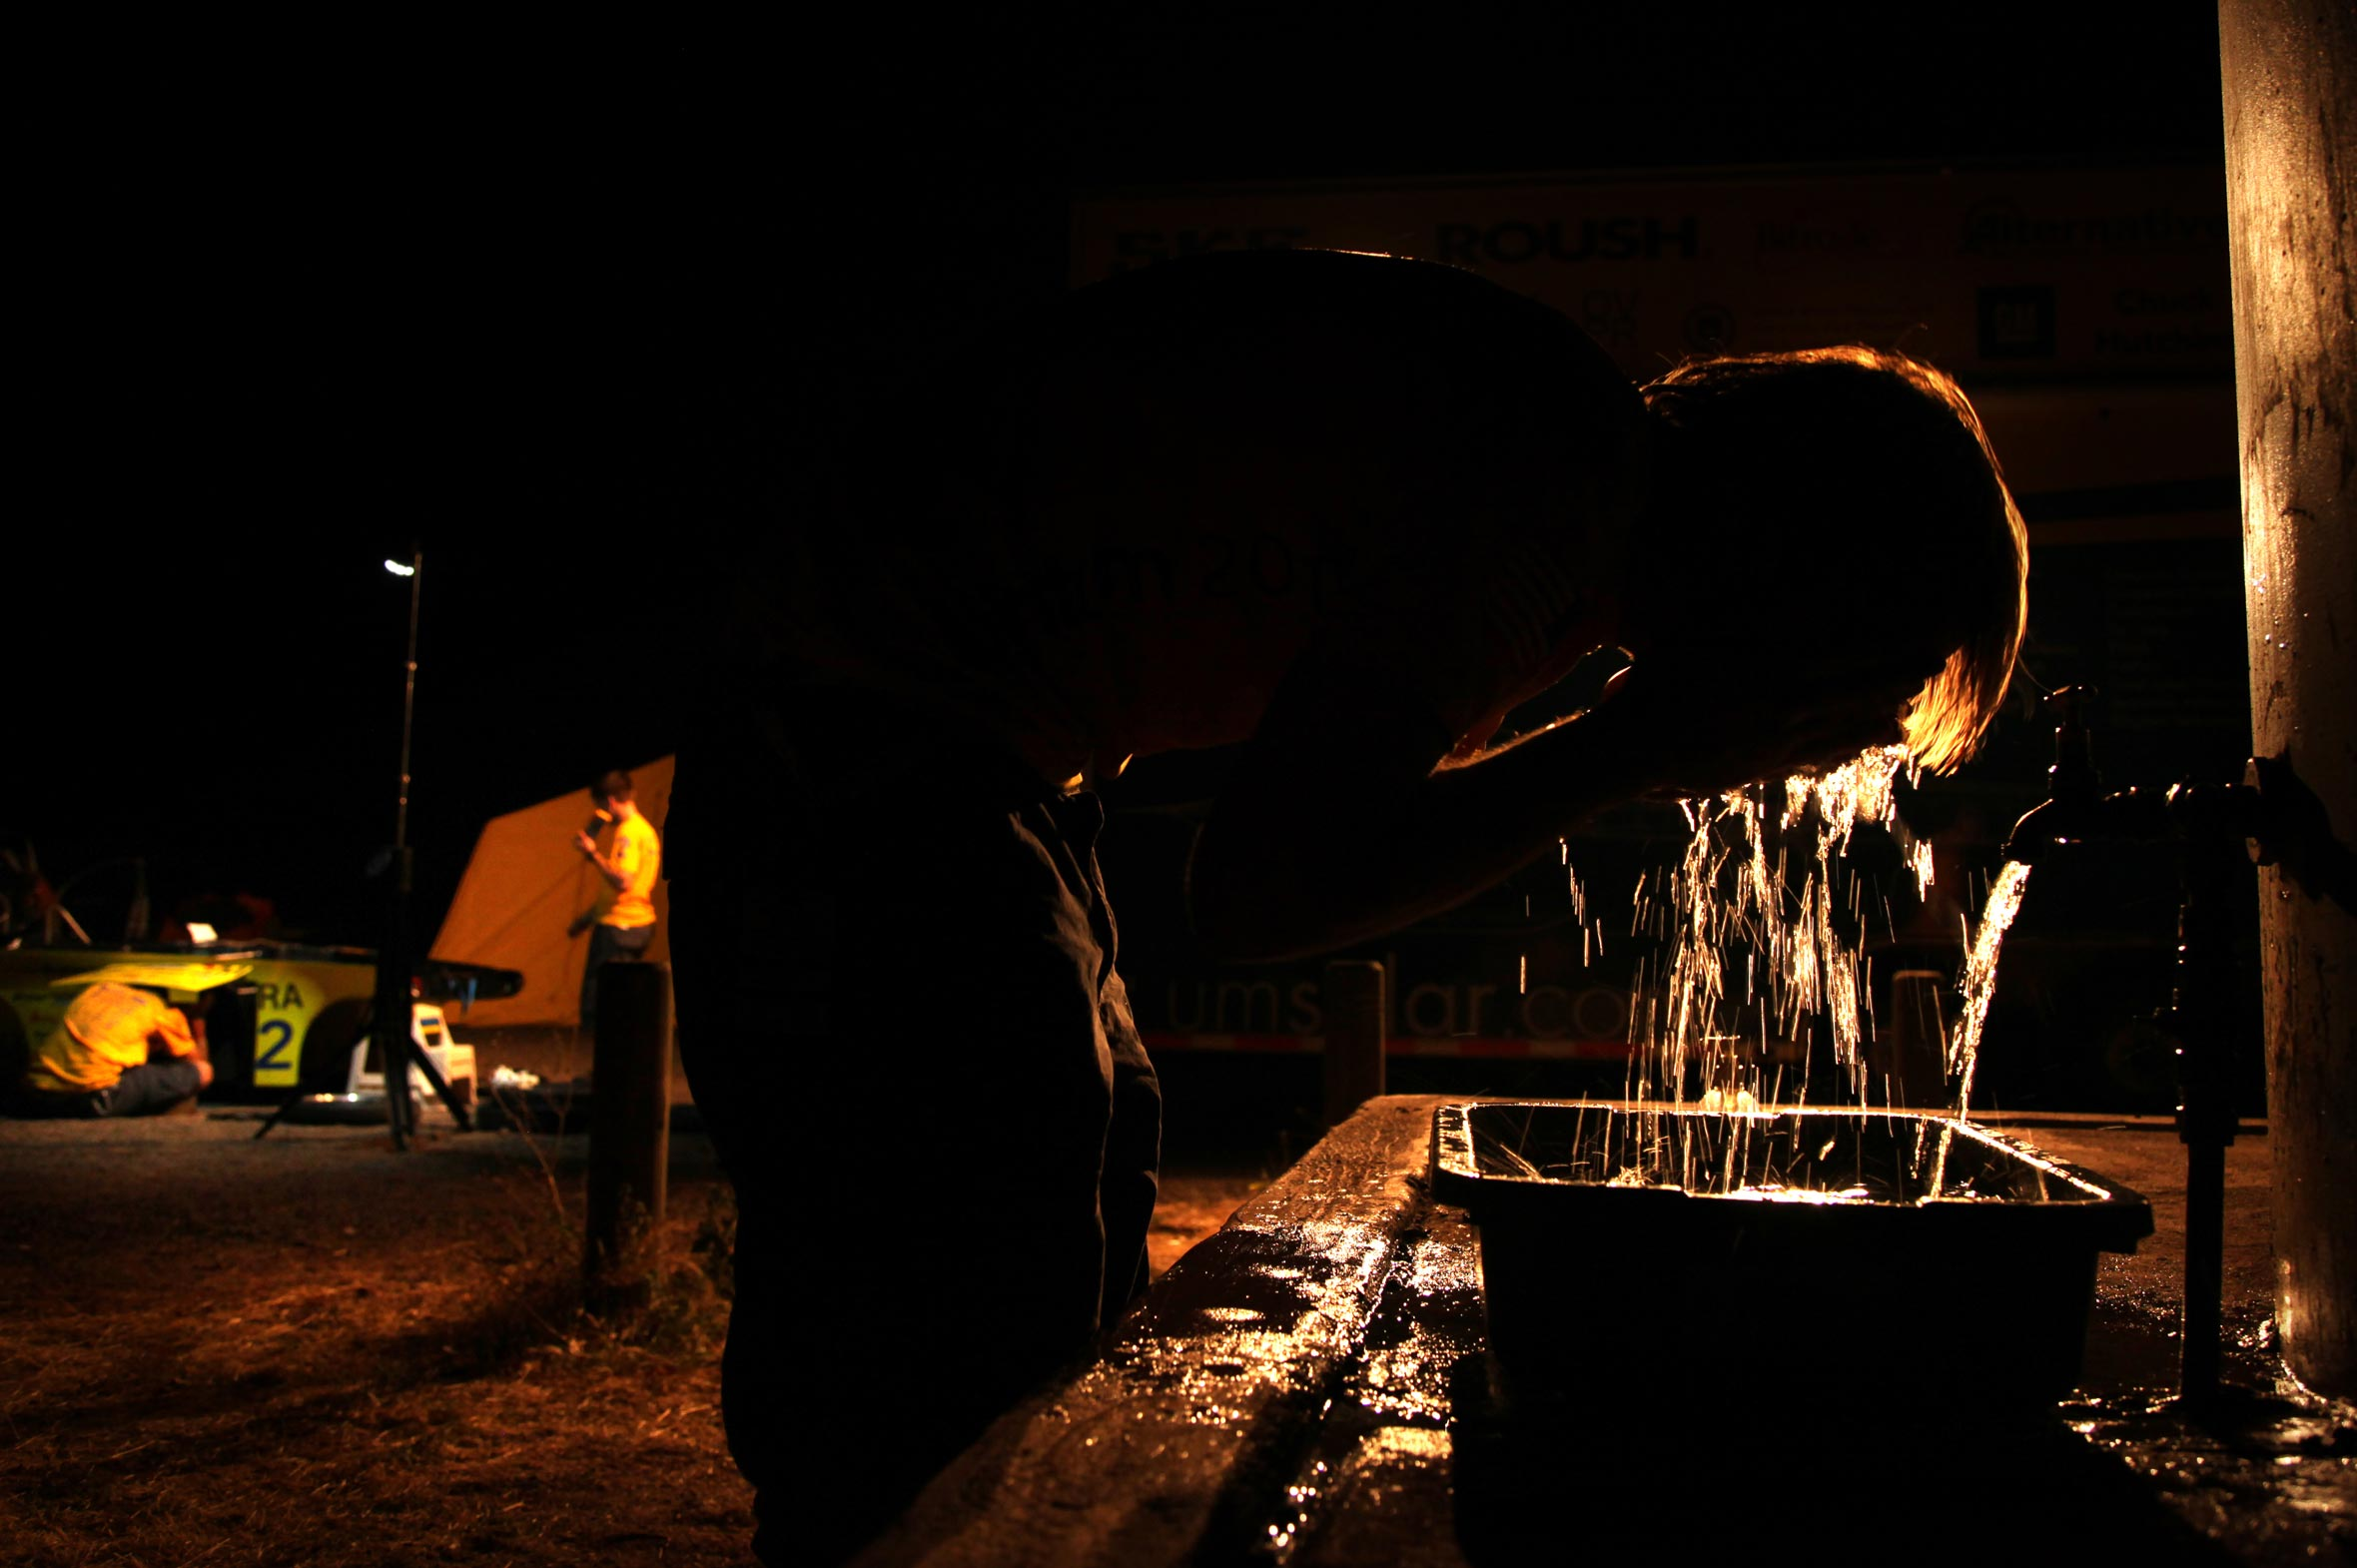 Person leaning over an outdoor water basin splashing water on his face in the dark.